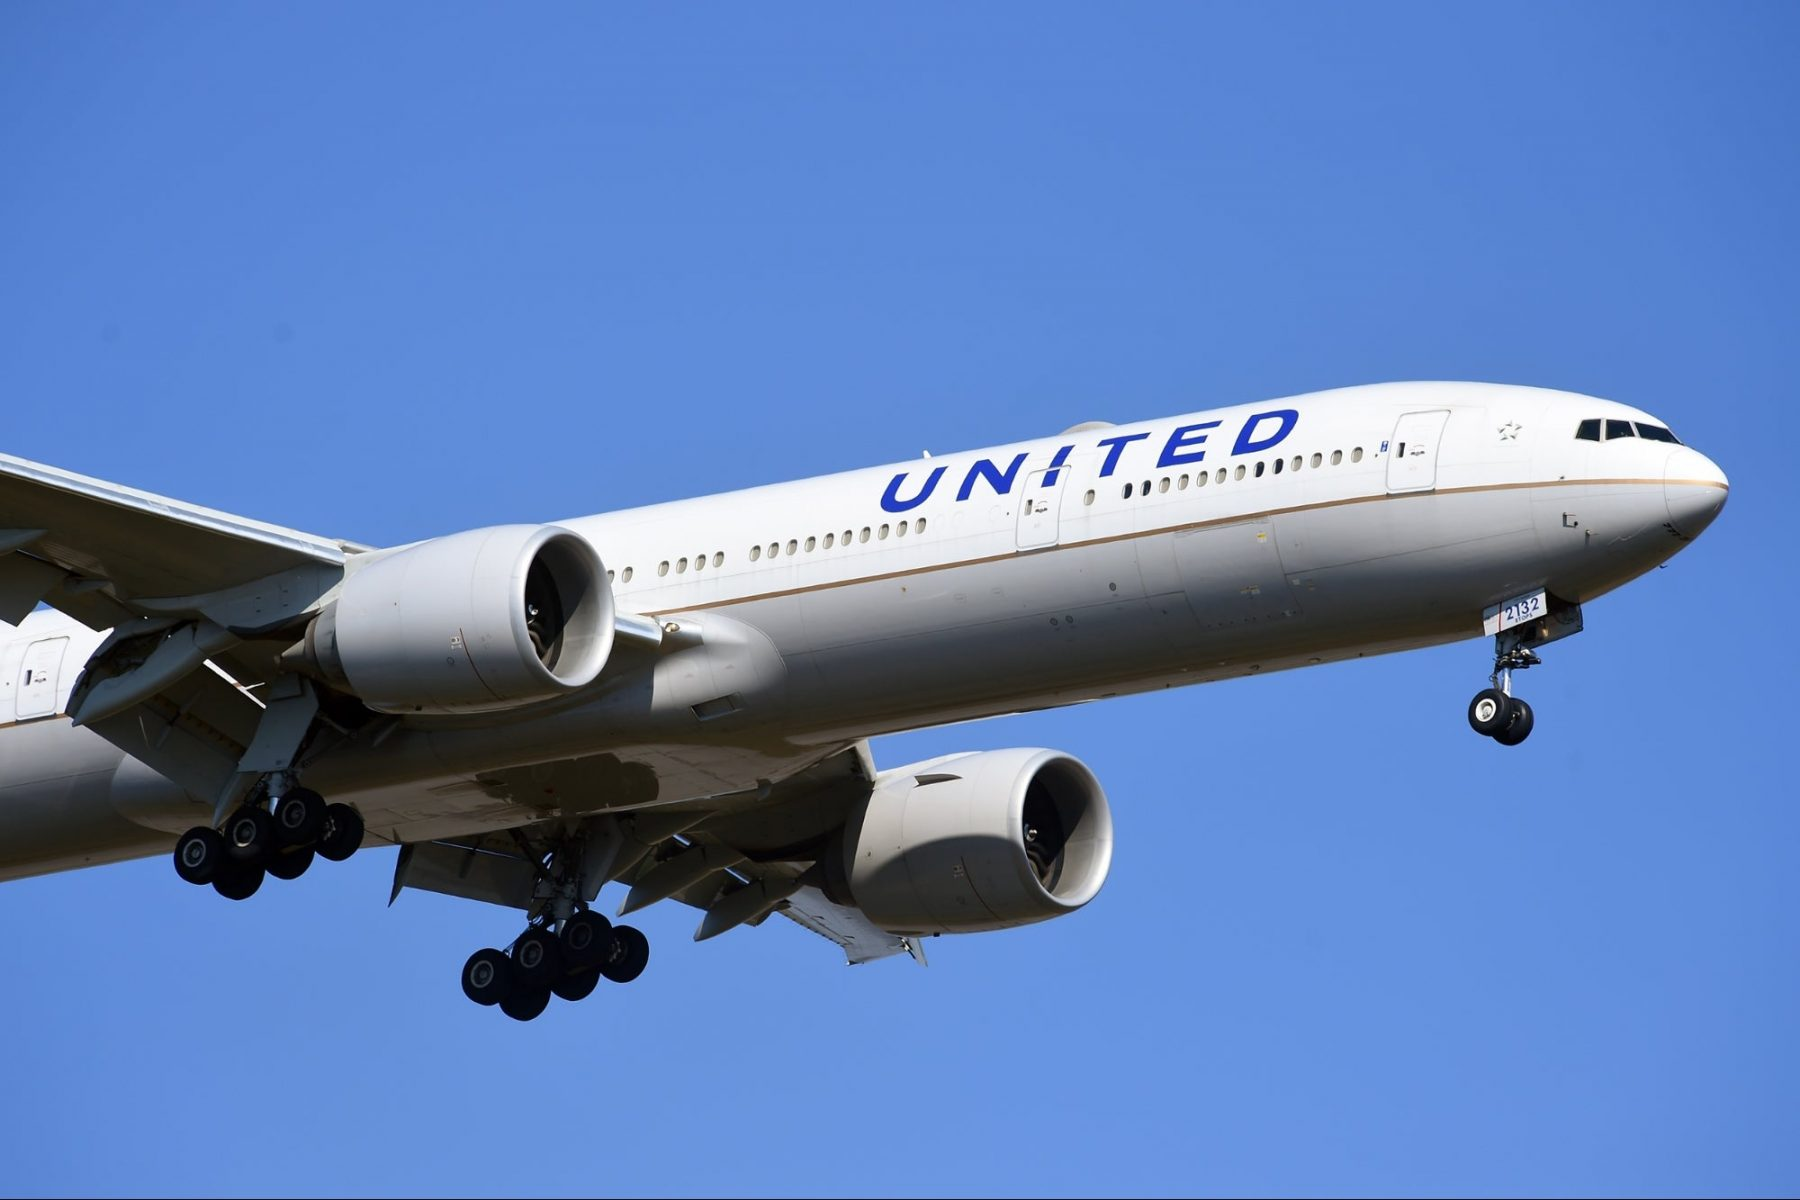 united-airlines-reportedly-reminds-flight-crews-not-to-duct-tape-passengers